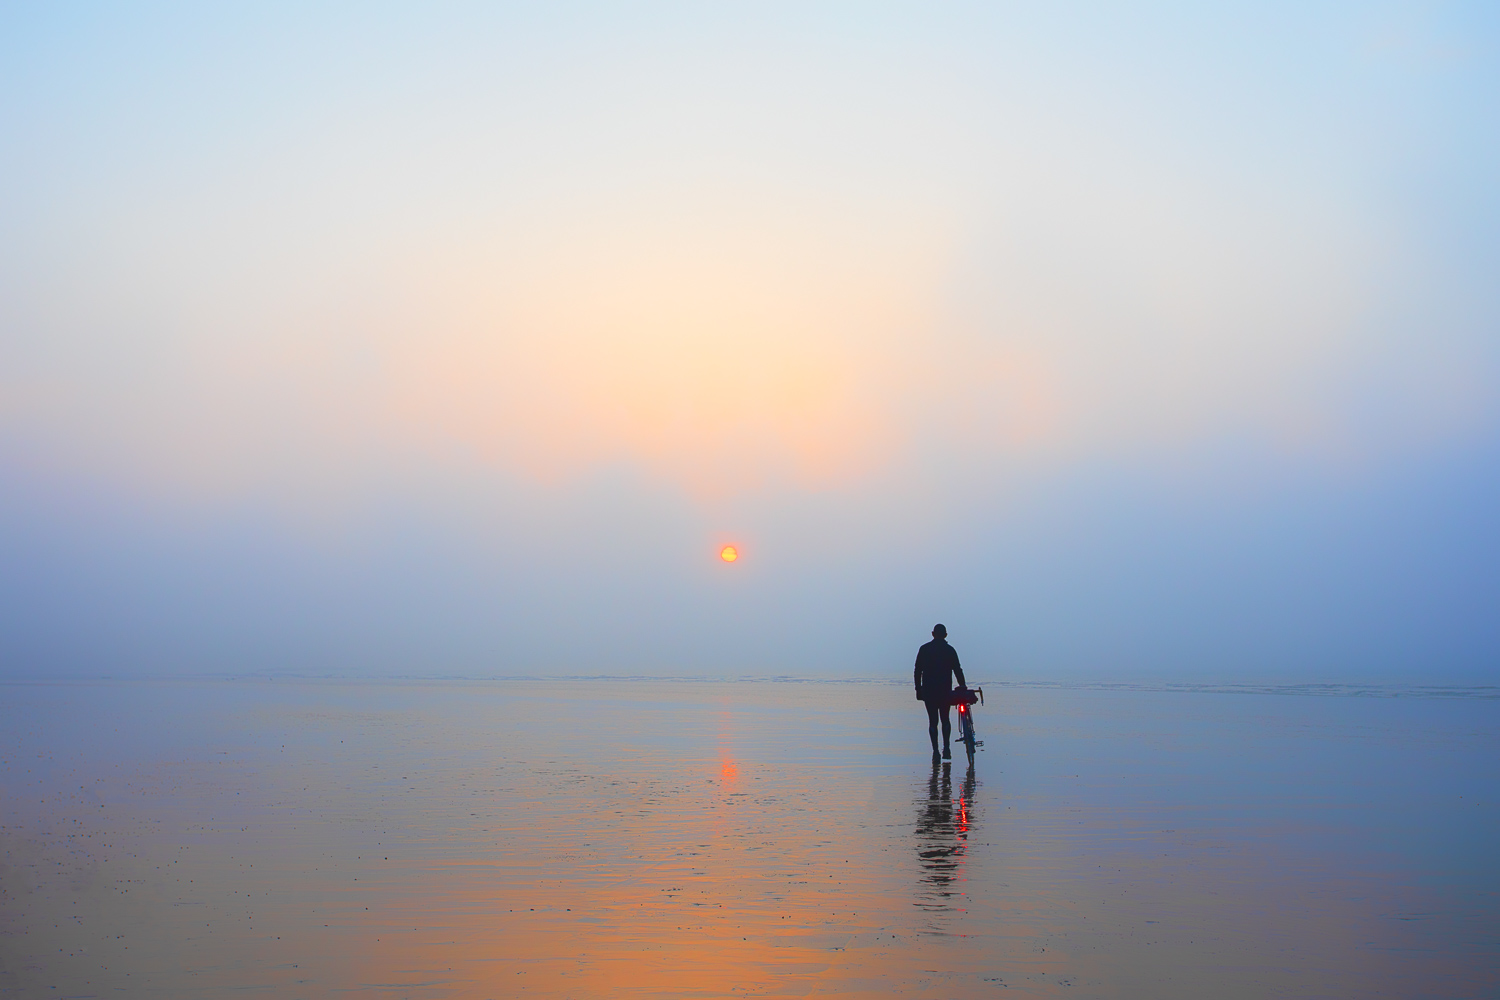 Man with bicycle walking towards misty sunrise on a shimmering sandy beach